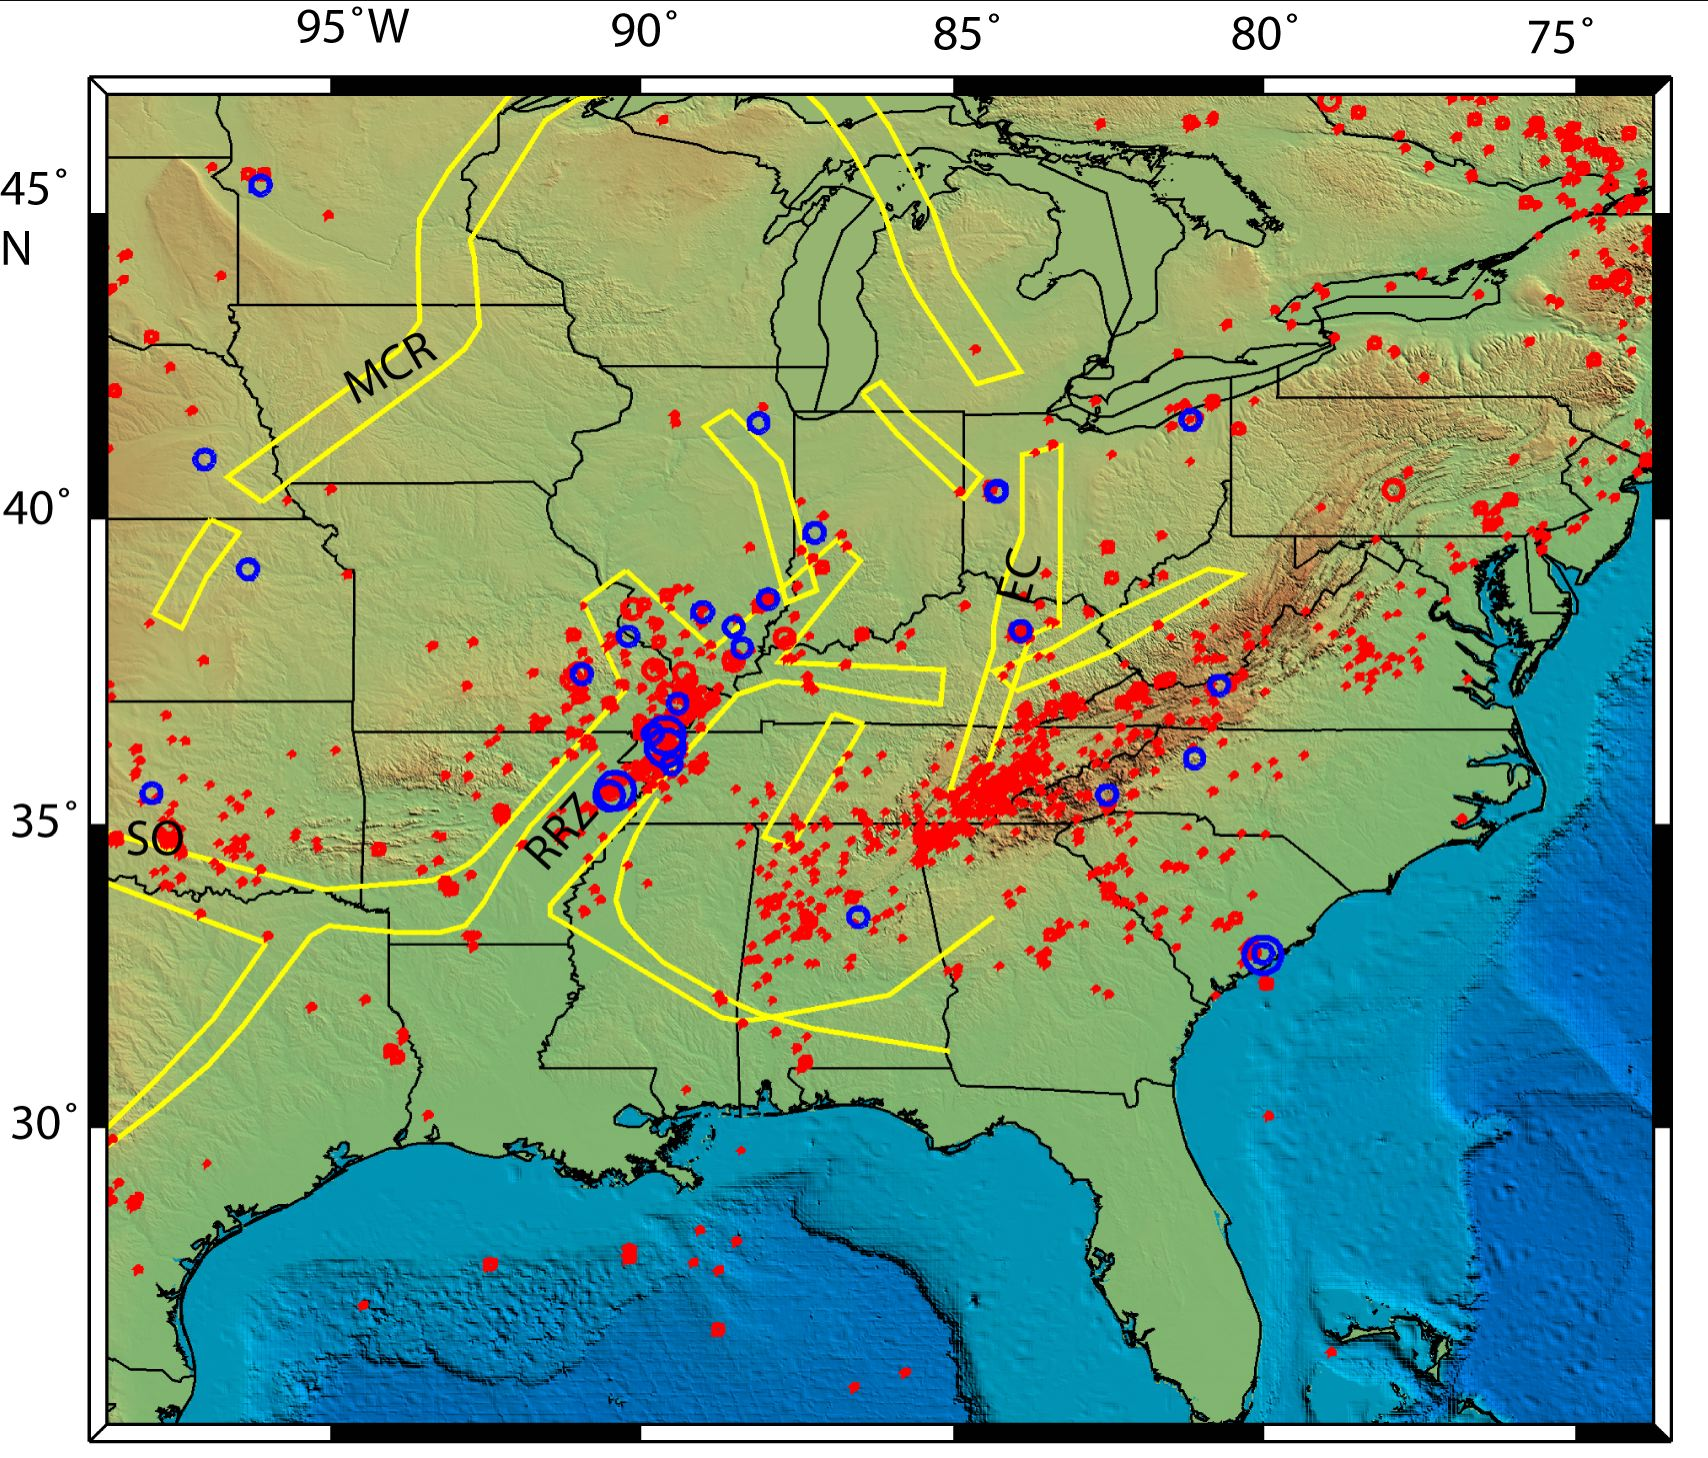 New Madrid Seismic Zone: A cold, dying fault? | Seth Stein on seismic risk map, new york state seismic map, seismic category map, ibc seismic classification map, us seismicity map, us wind map, us ground snow load map, us soils map, global seismic hazard map, level 4 seismic zones map, us frost depth map, california seismic hazard zone map, us heating degree days map, ibc zip code map, us rainfall intensity map, seismic activity map, us altitude map, gsa seismic map, 10 fema zones map, earthquake map,